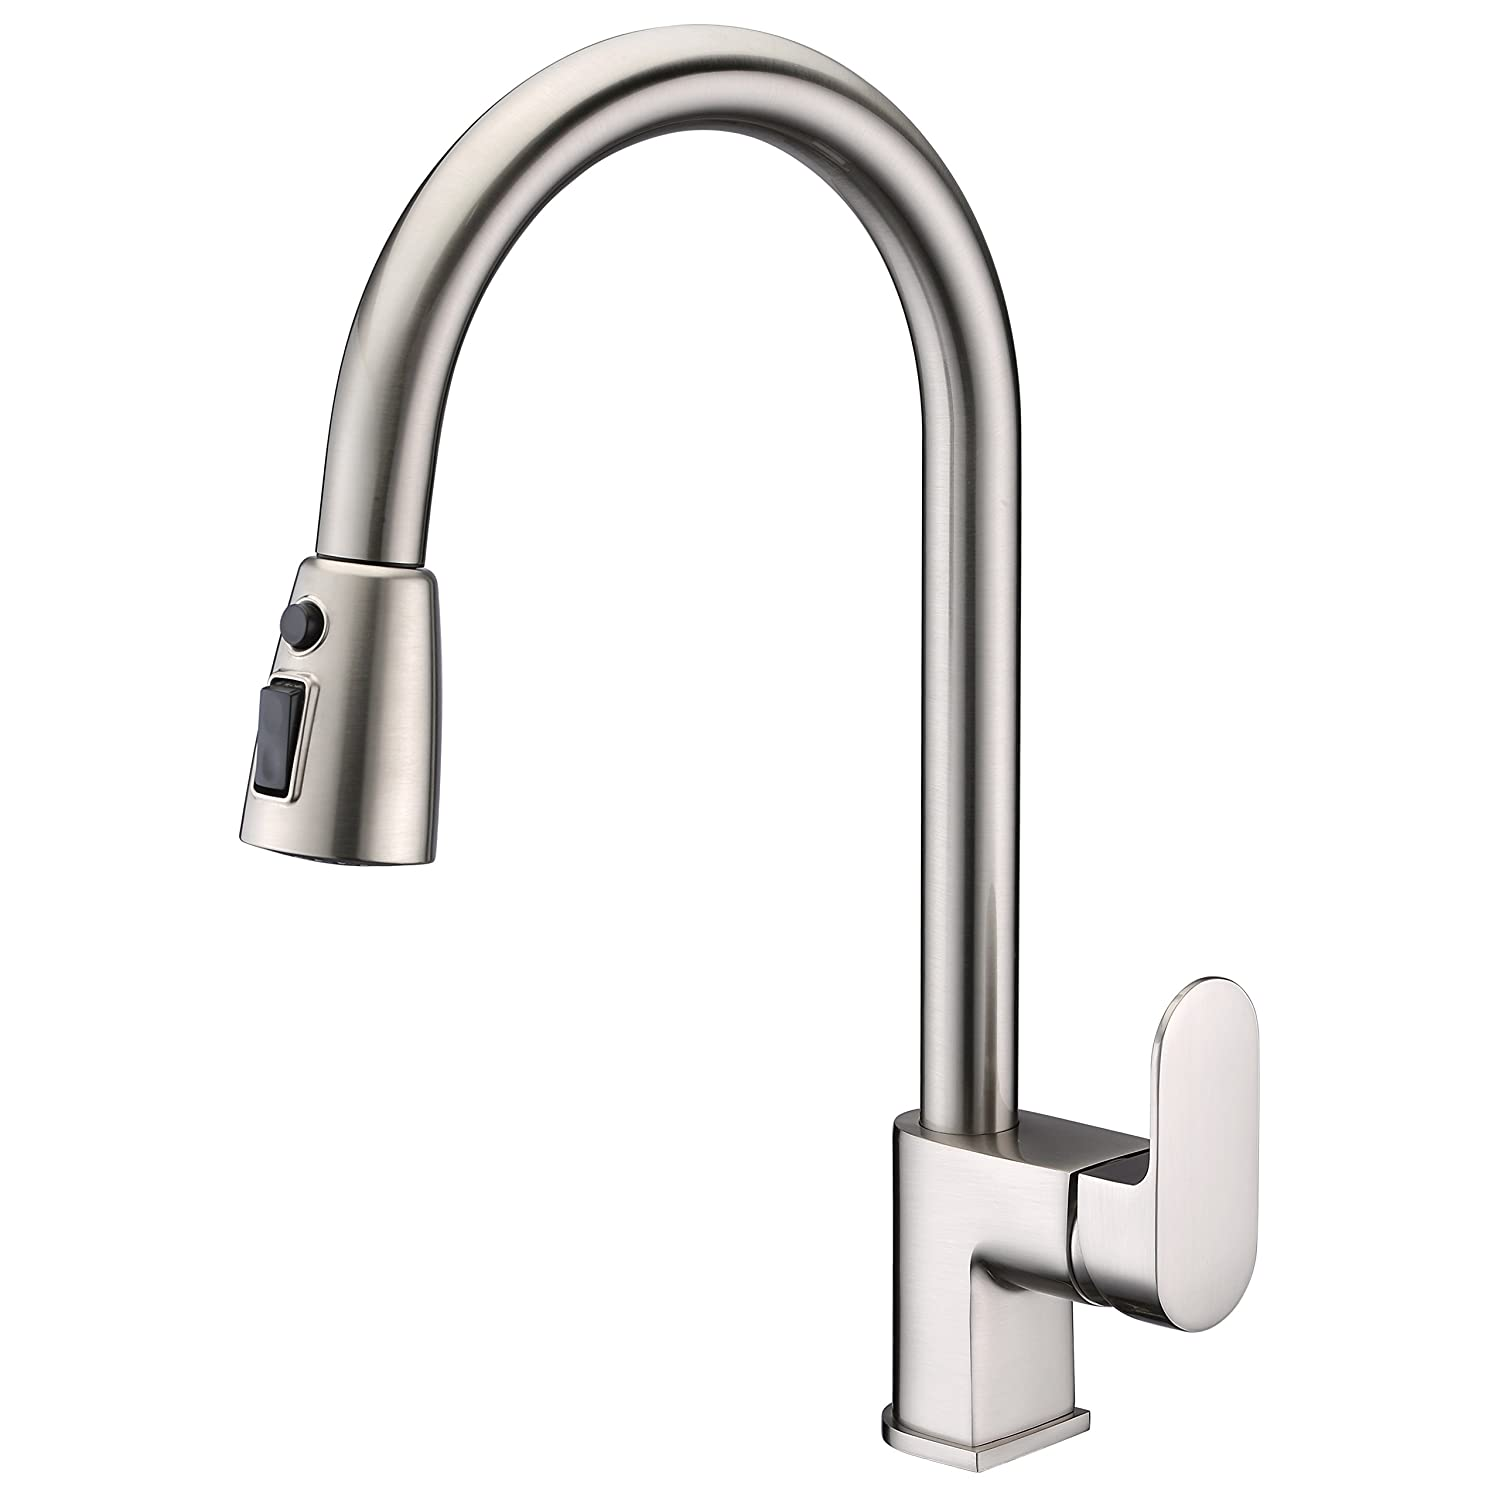 Kitchen Sink Faucet Brushed Nickel with Pull Out Sprayer Wenken Solid Brass Single Handle Pre-rinse Pull Down Kitchen Sink Faucet